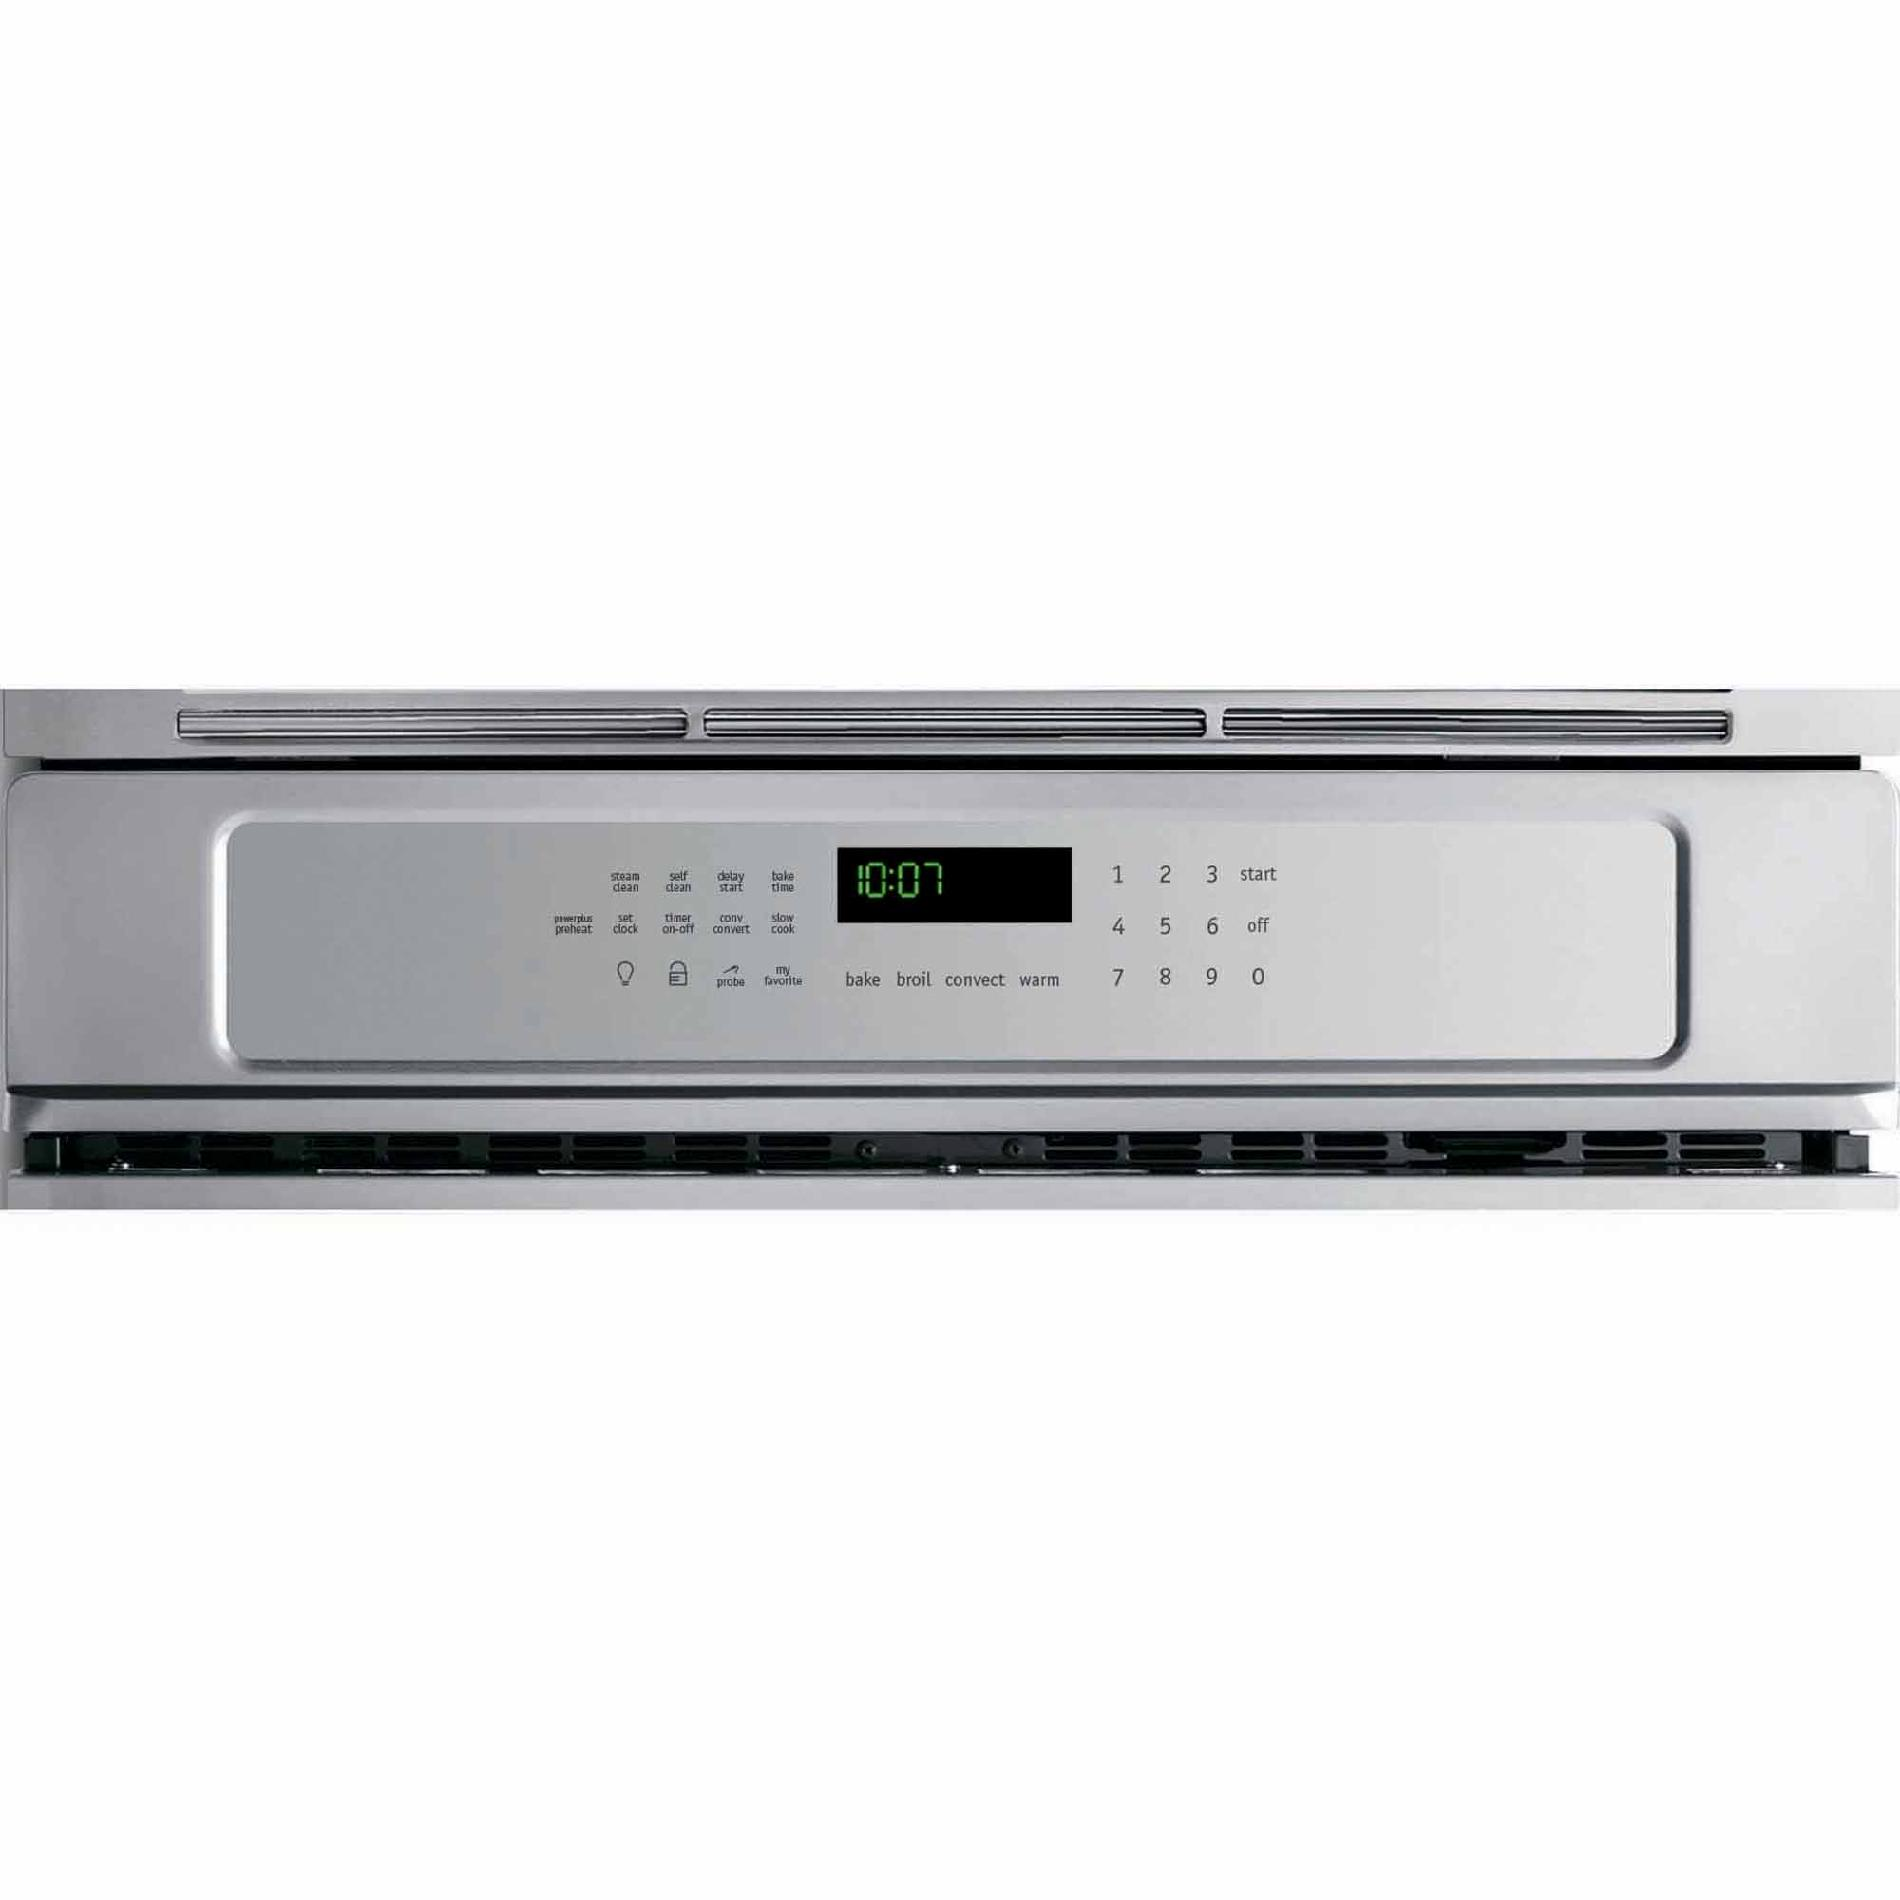 Frigidaire Professional 4.6 cu. ft. Electric Wall Oven/Microwave Combination w/ Smudge-Proof™ - Stainless Steel